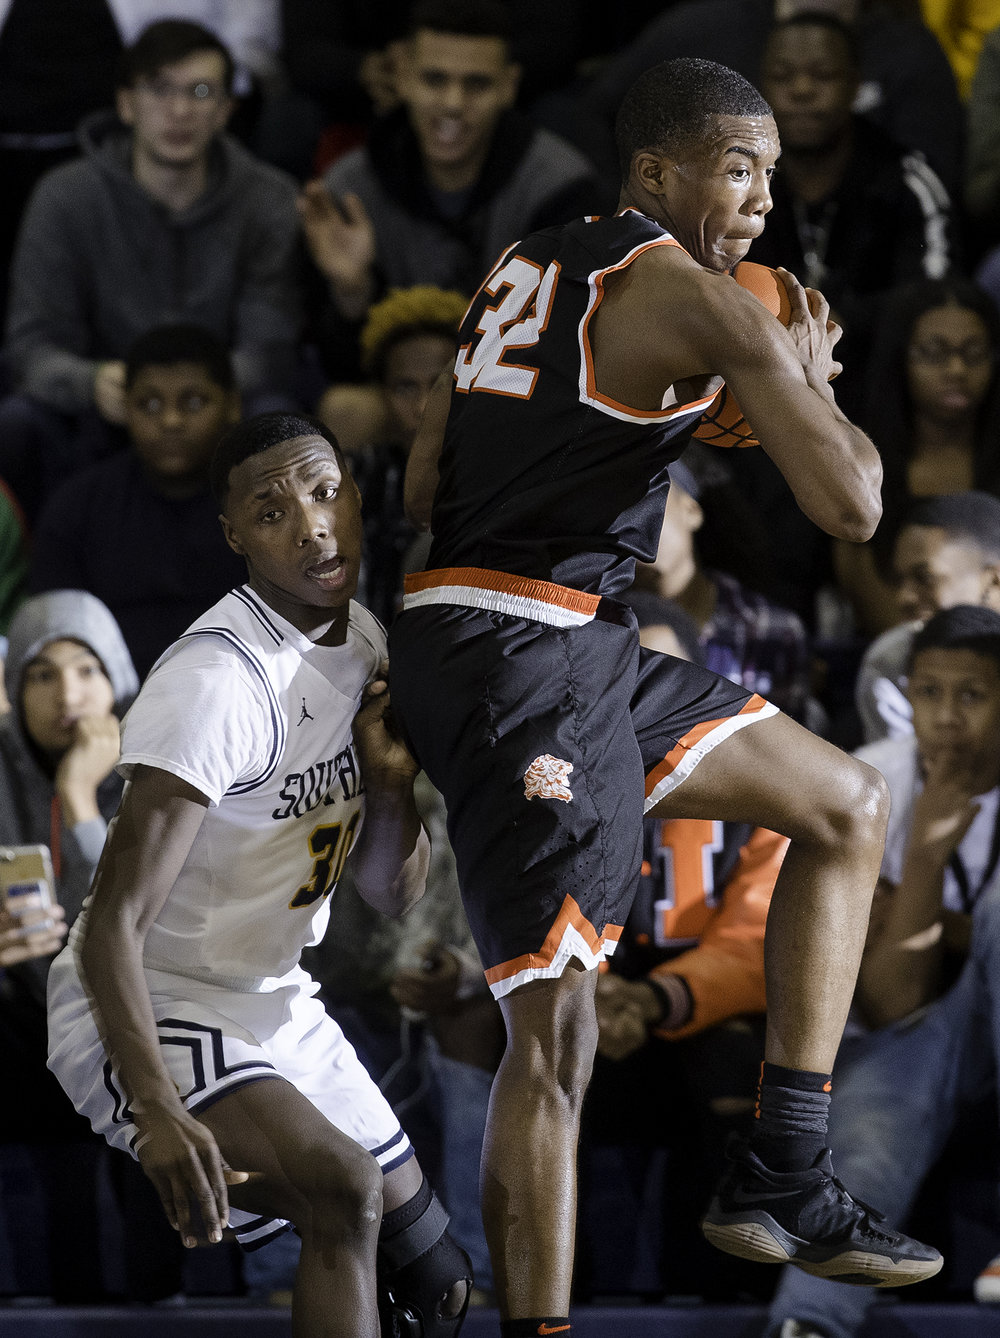 Lanphier's Karl Wright  grasa  rebound in front of Southeast's Devin Blue-Robinson at Southeast High School Tuesday,  Feb. 20, 2018. [Ted Schurter/The State Journal-Register]